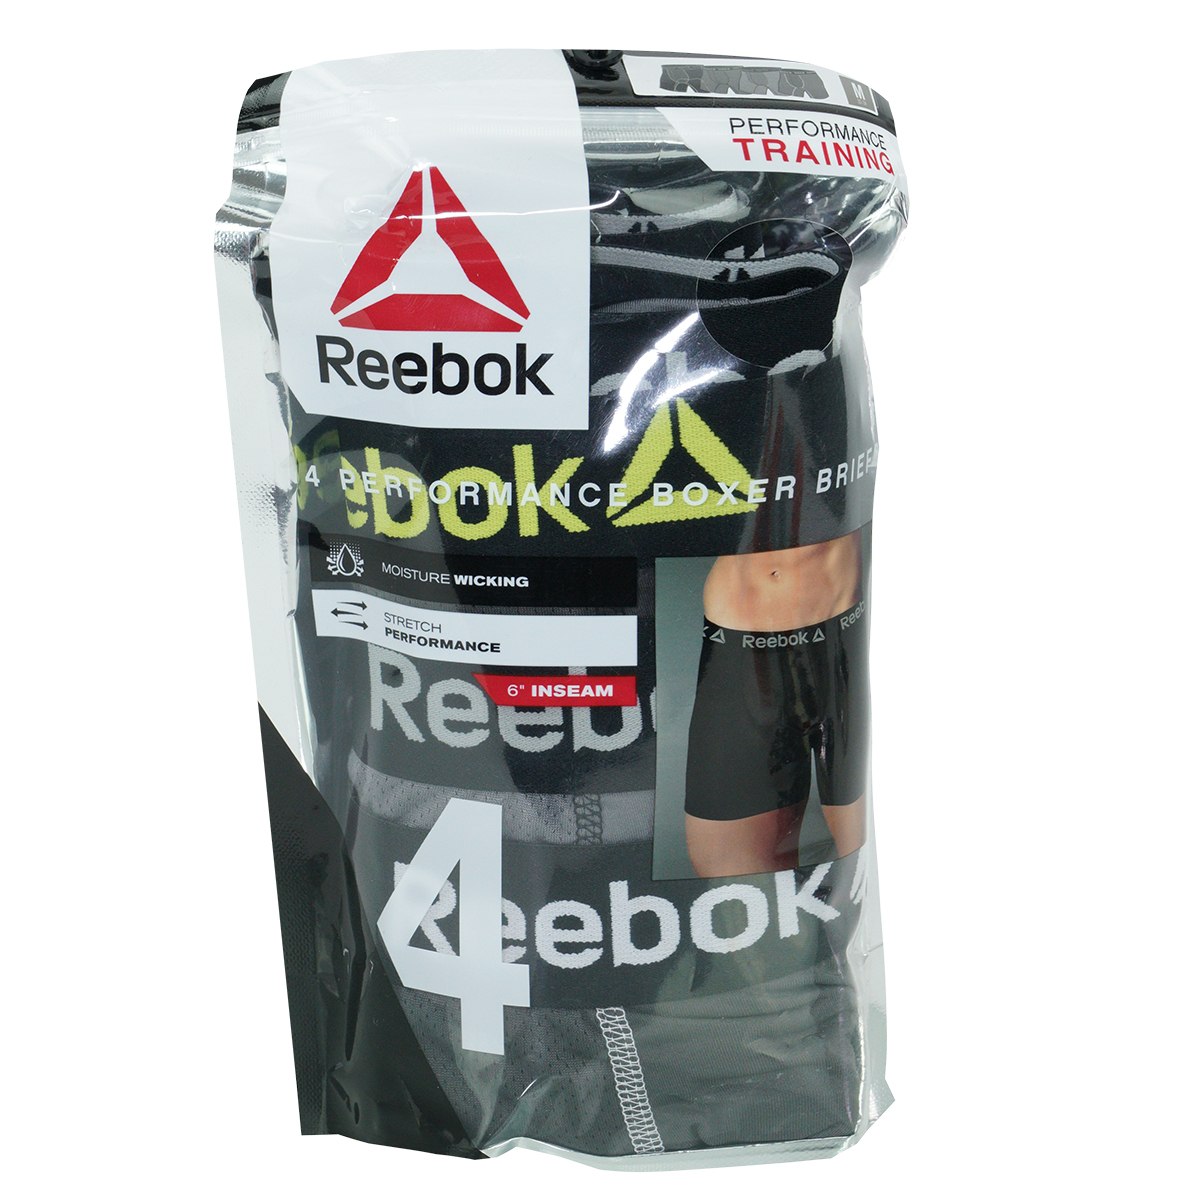 Reebok-Men-039-s-Performance-Boxer-Briefs-4-Pack thumbnail 11